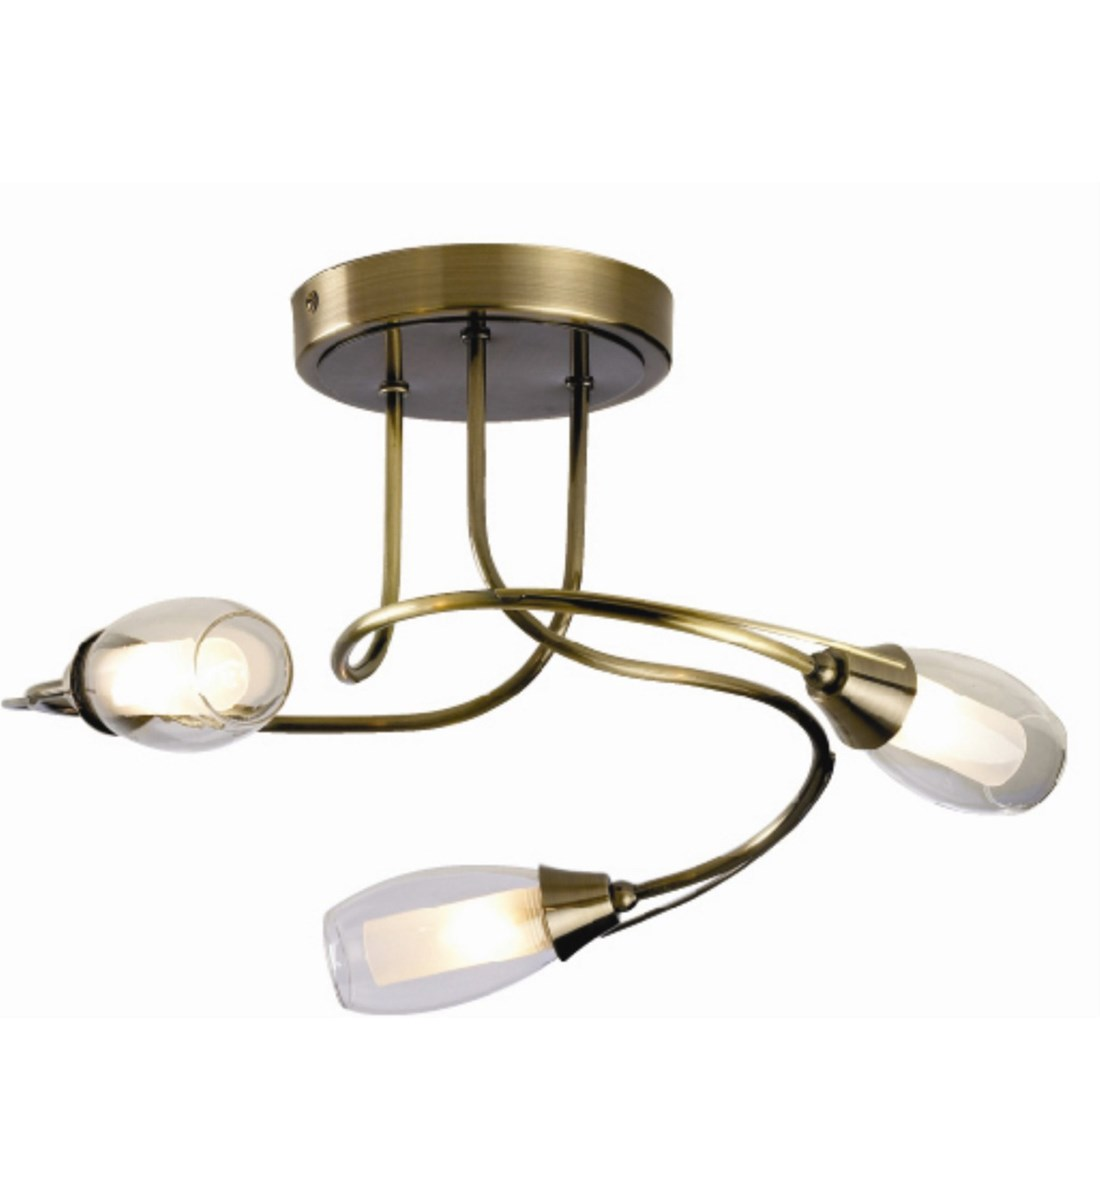 Iris 3 Light Ceiling Fitting Antique Brass Multi Light Fitting